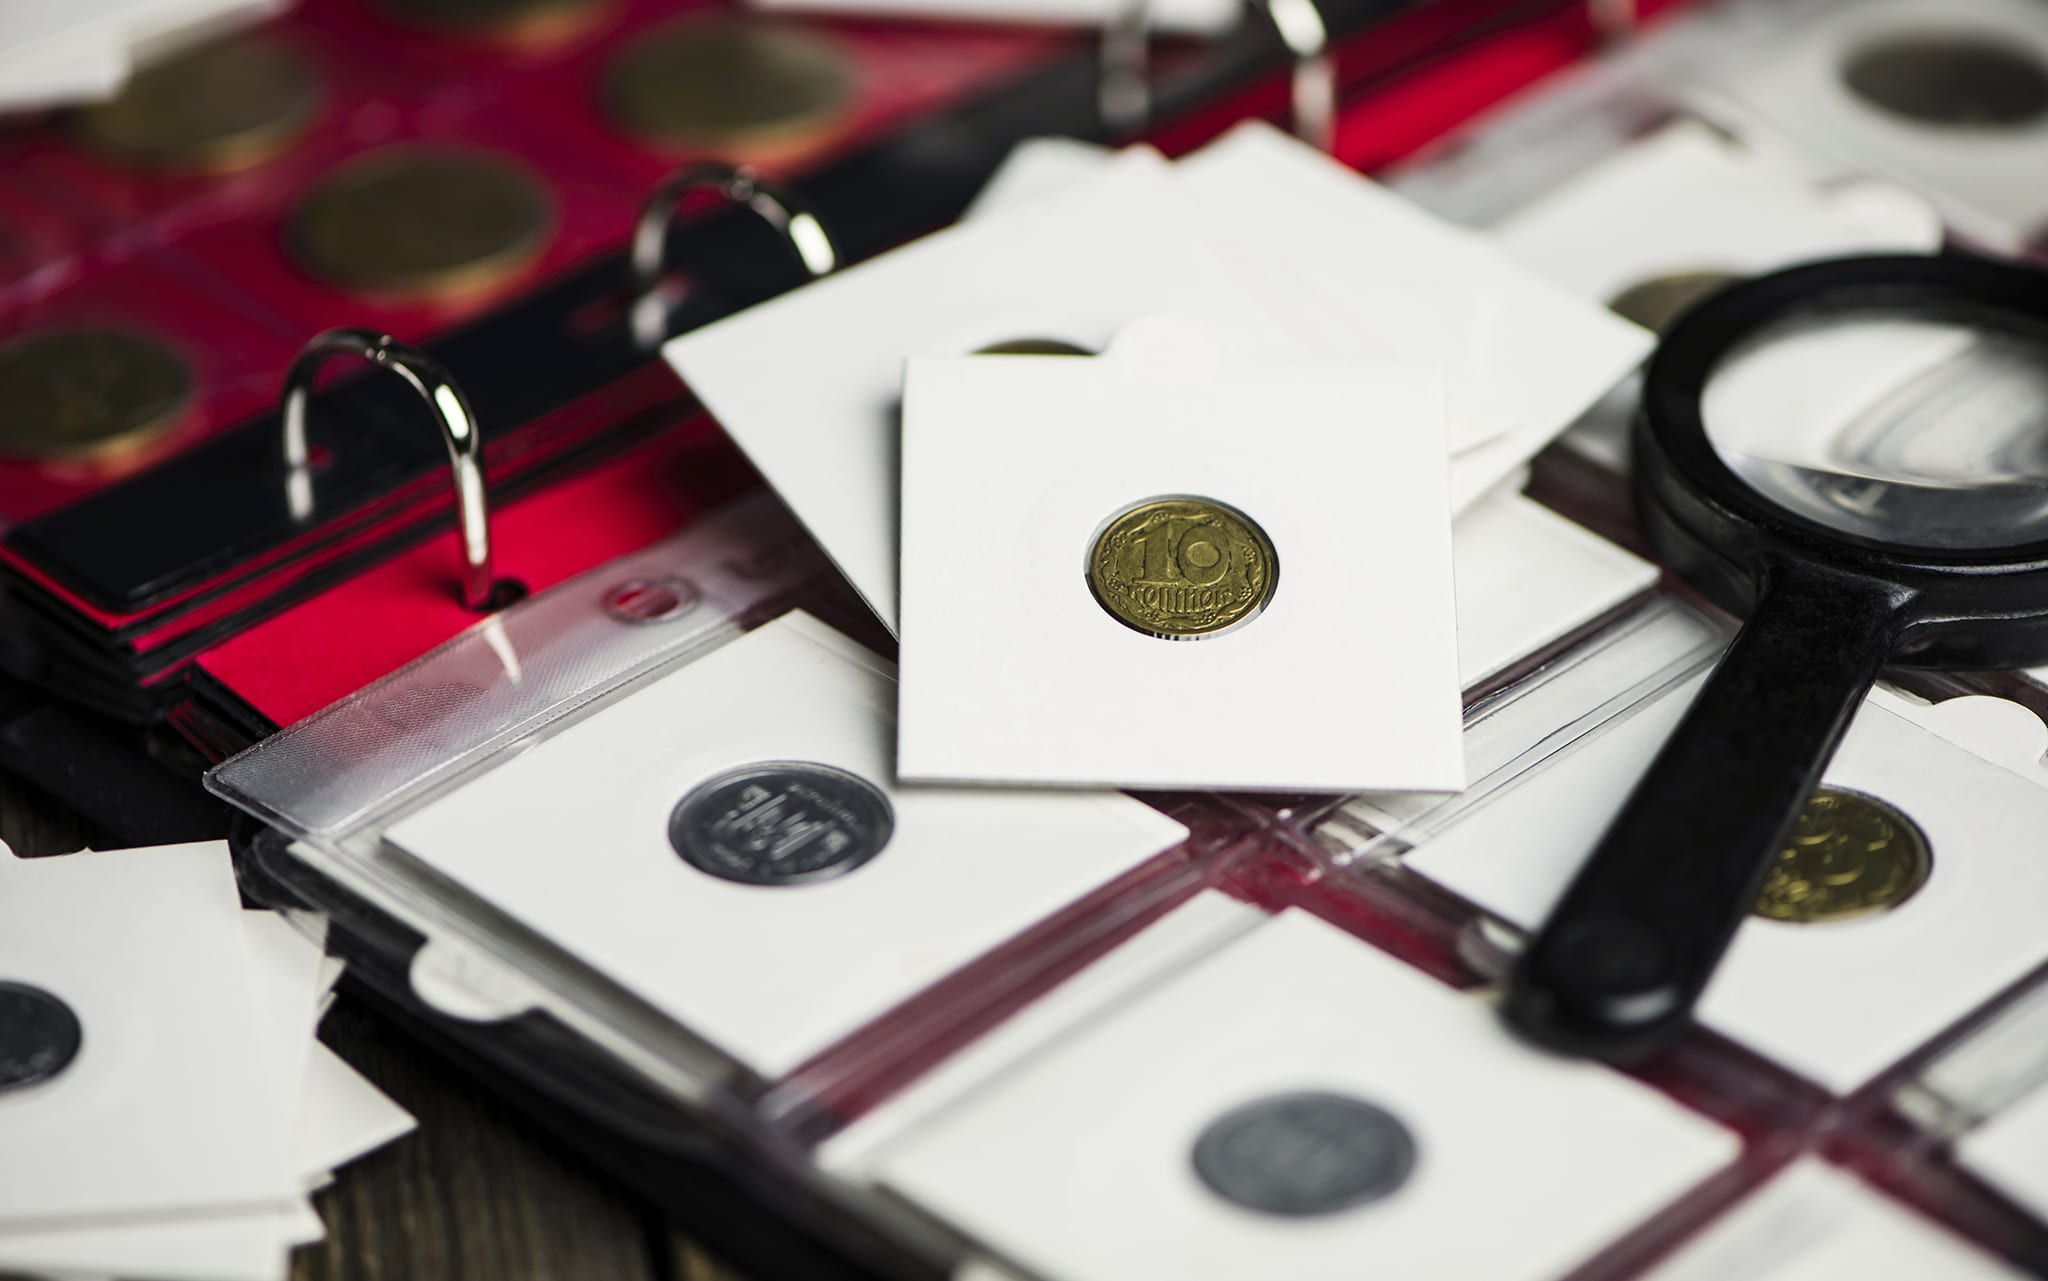 collectible coins are a valuable asset to collect and ramzs has a great selection to choose from